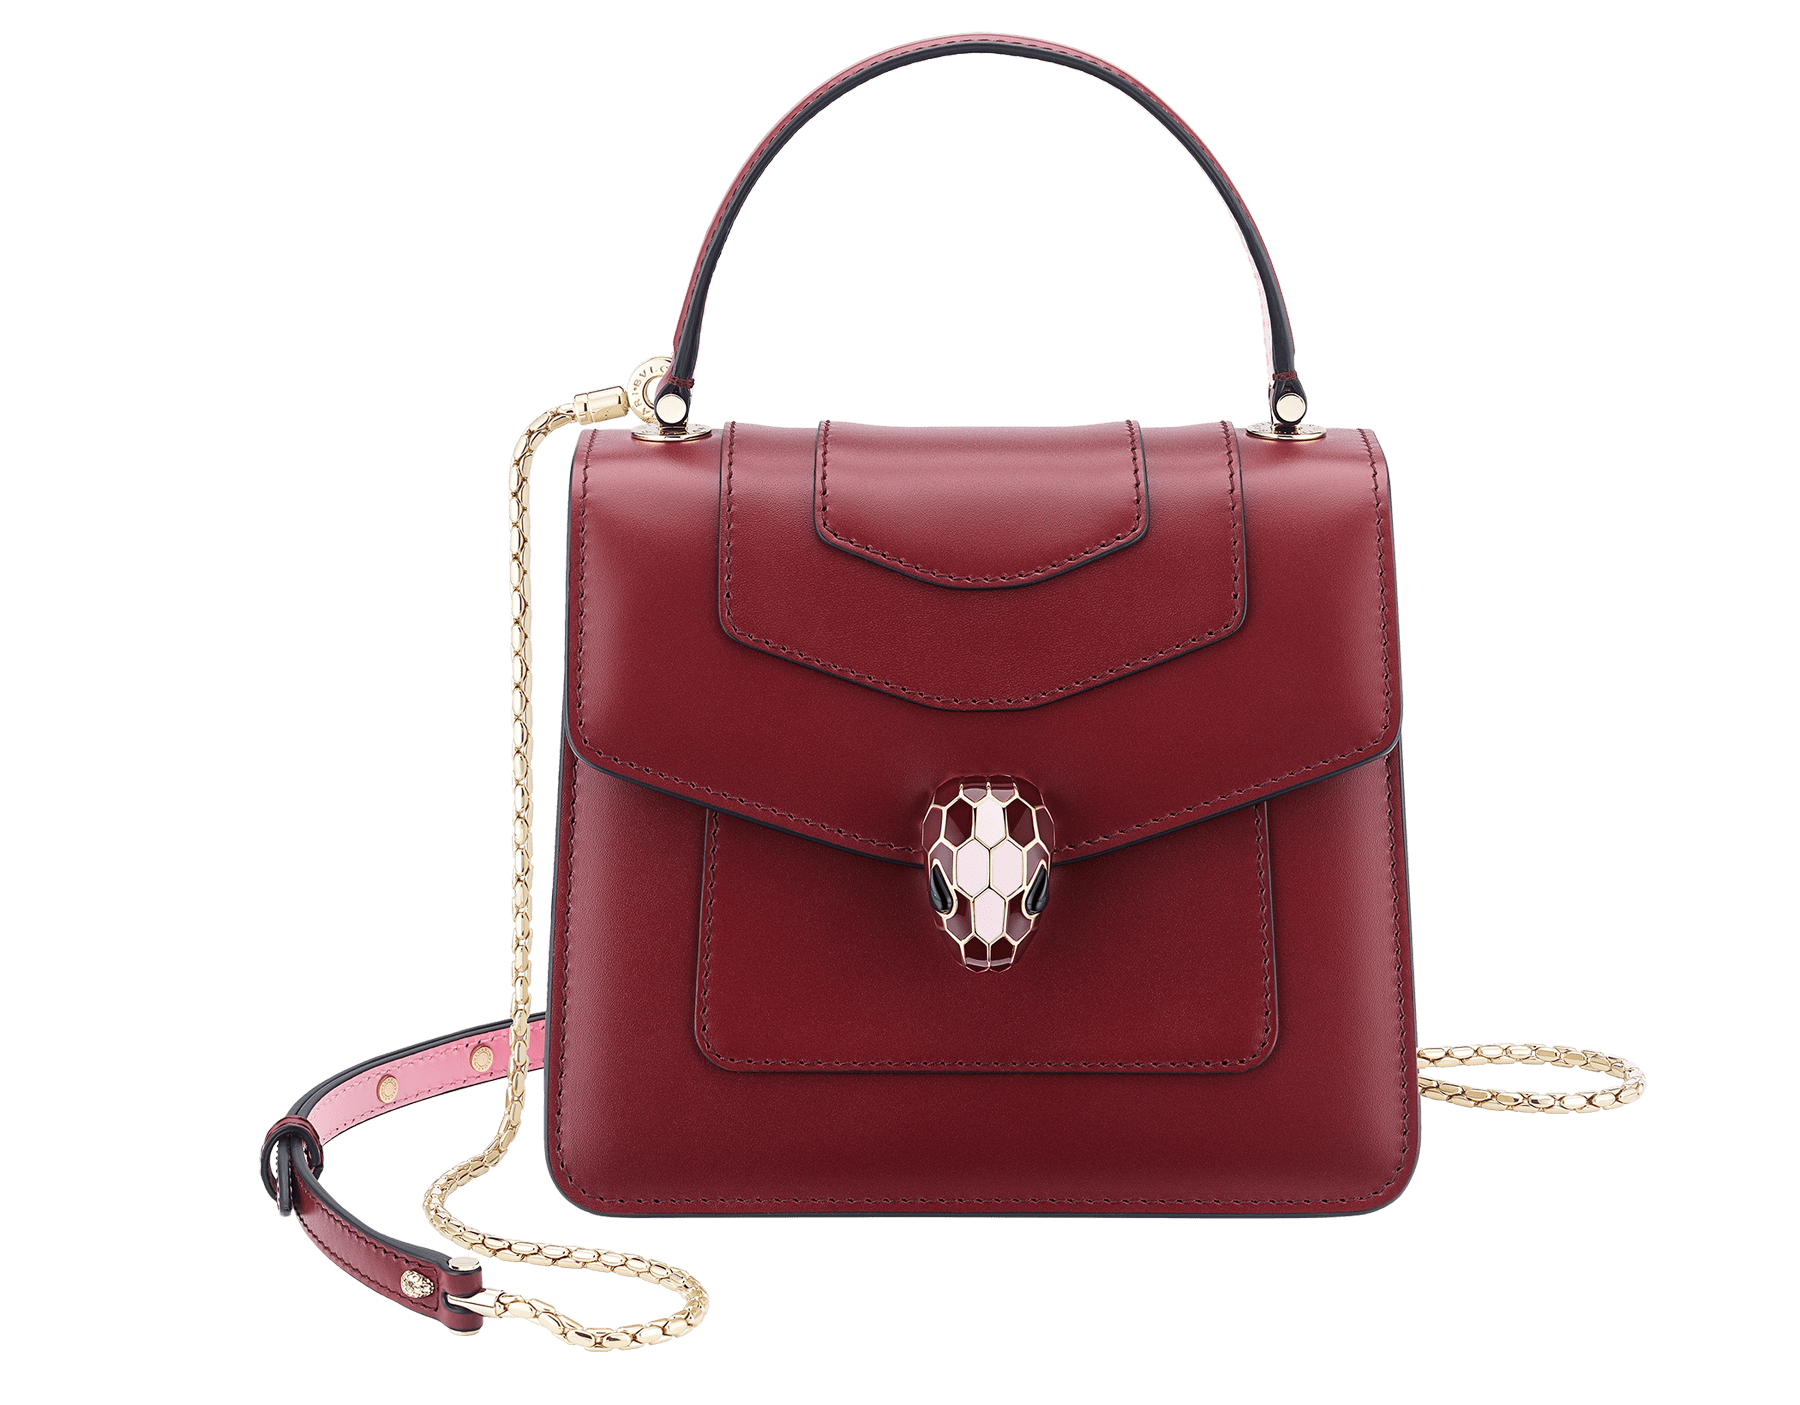 Serpenti Forever crossbody bag in Roman garnet calf leather, with flash amethyst, rosa di francia and white agate calf leather sides. Iconic snakehead closure in light gold plated brass embellished with Roman garnet and rosa di francia enamel and black onyx eyes. 288891 image 1